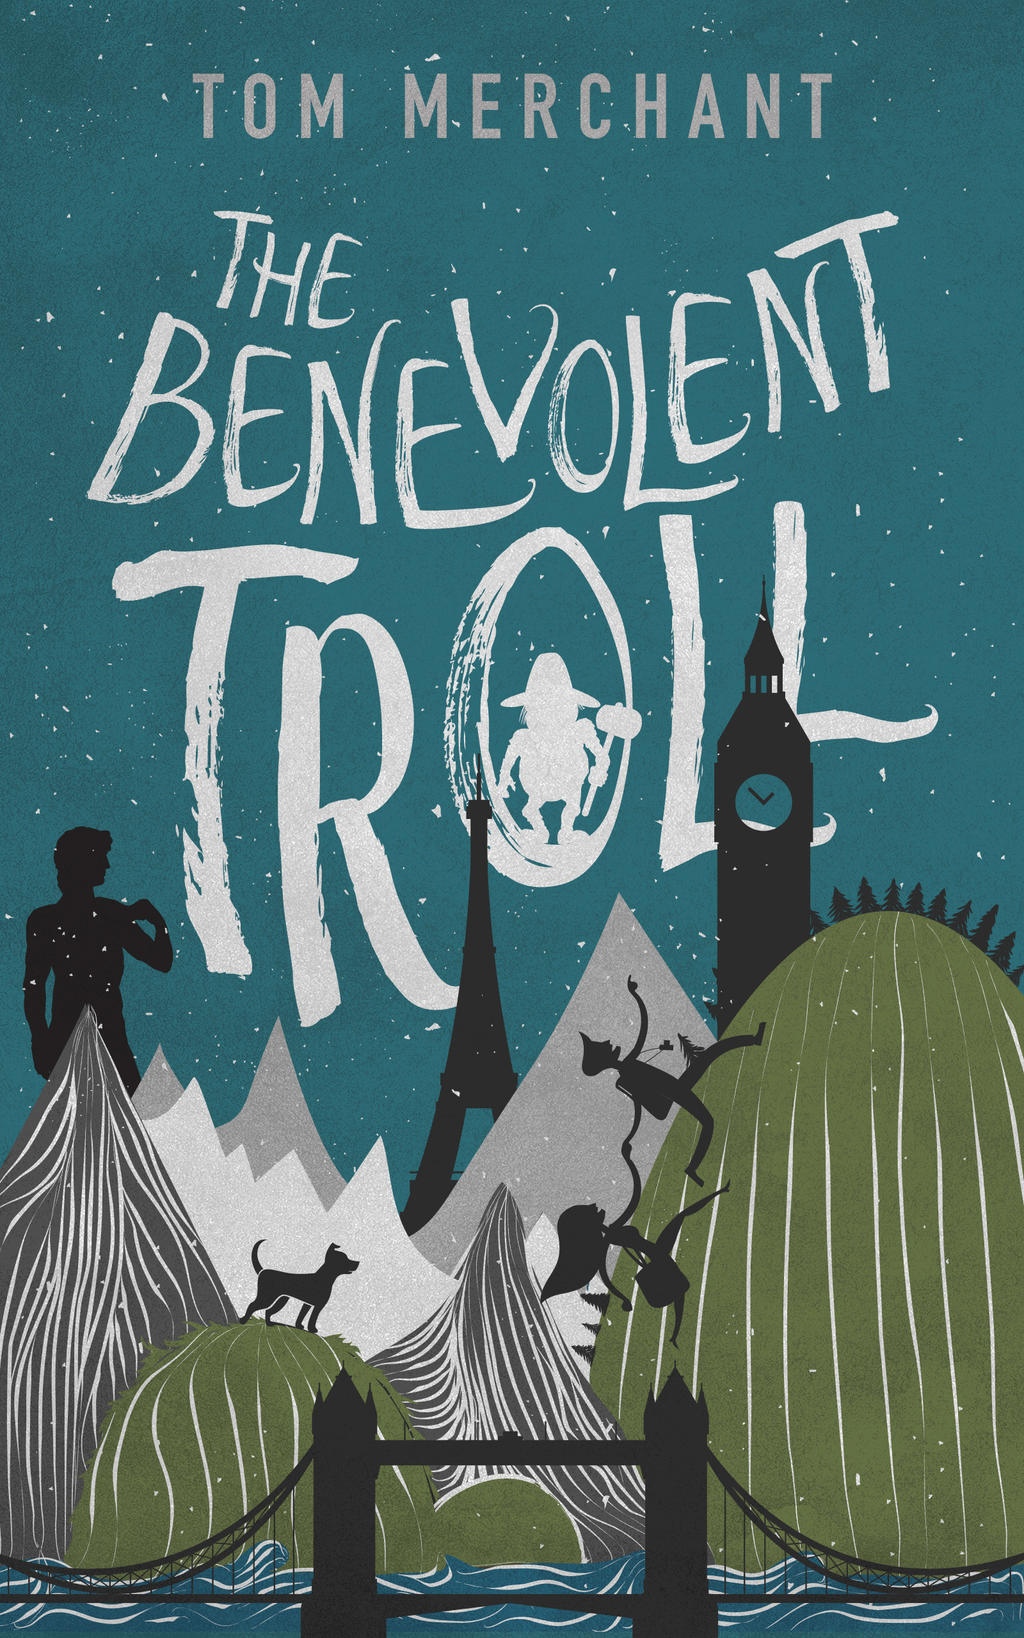 Book Cover Design Deviantart : Book cover design for the benevolent troll by ebooklaunch